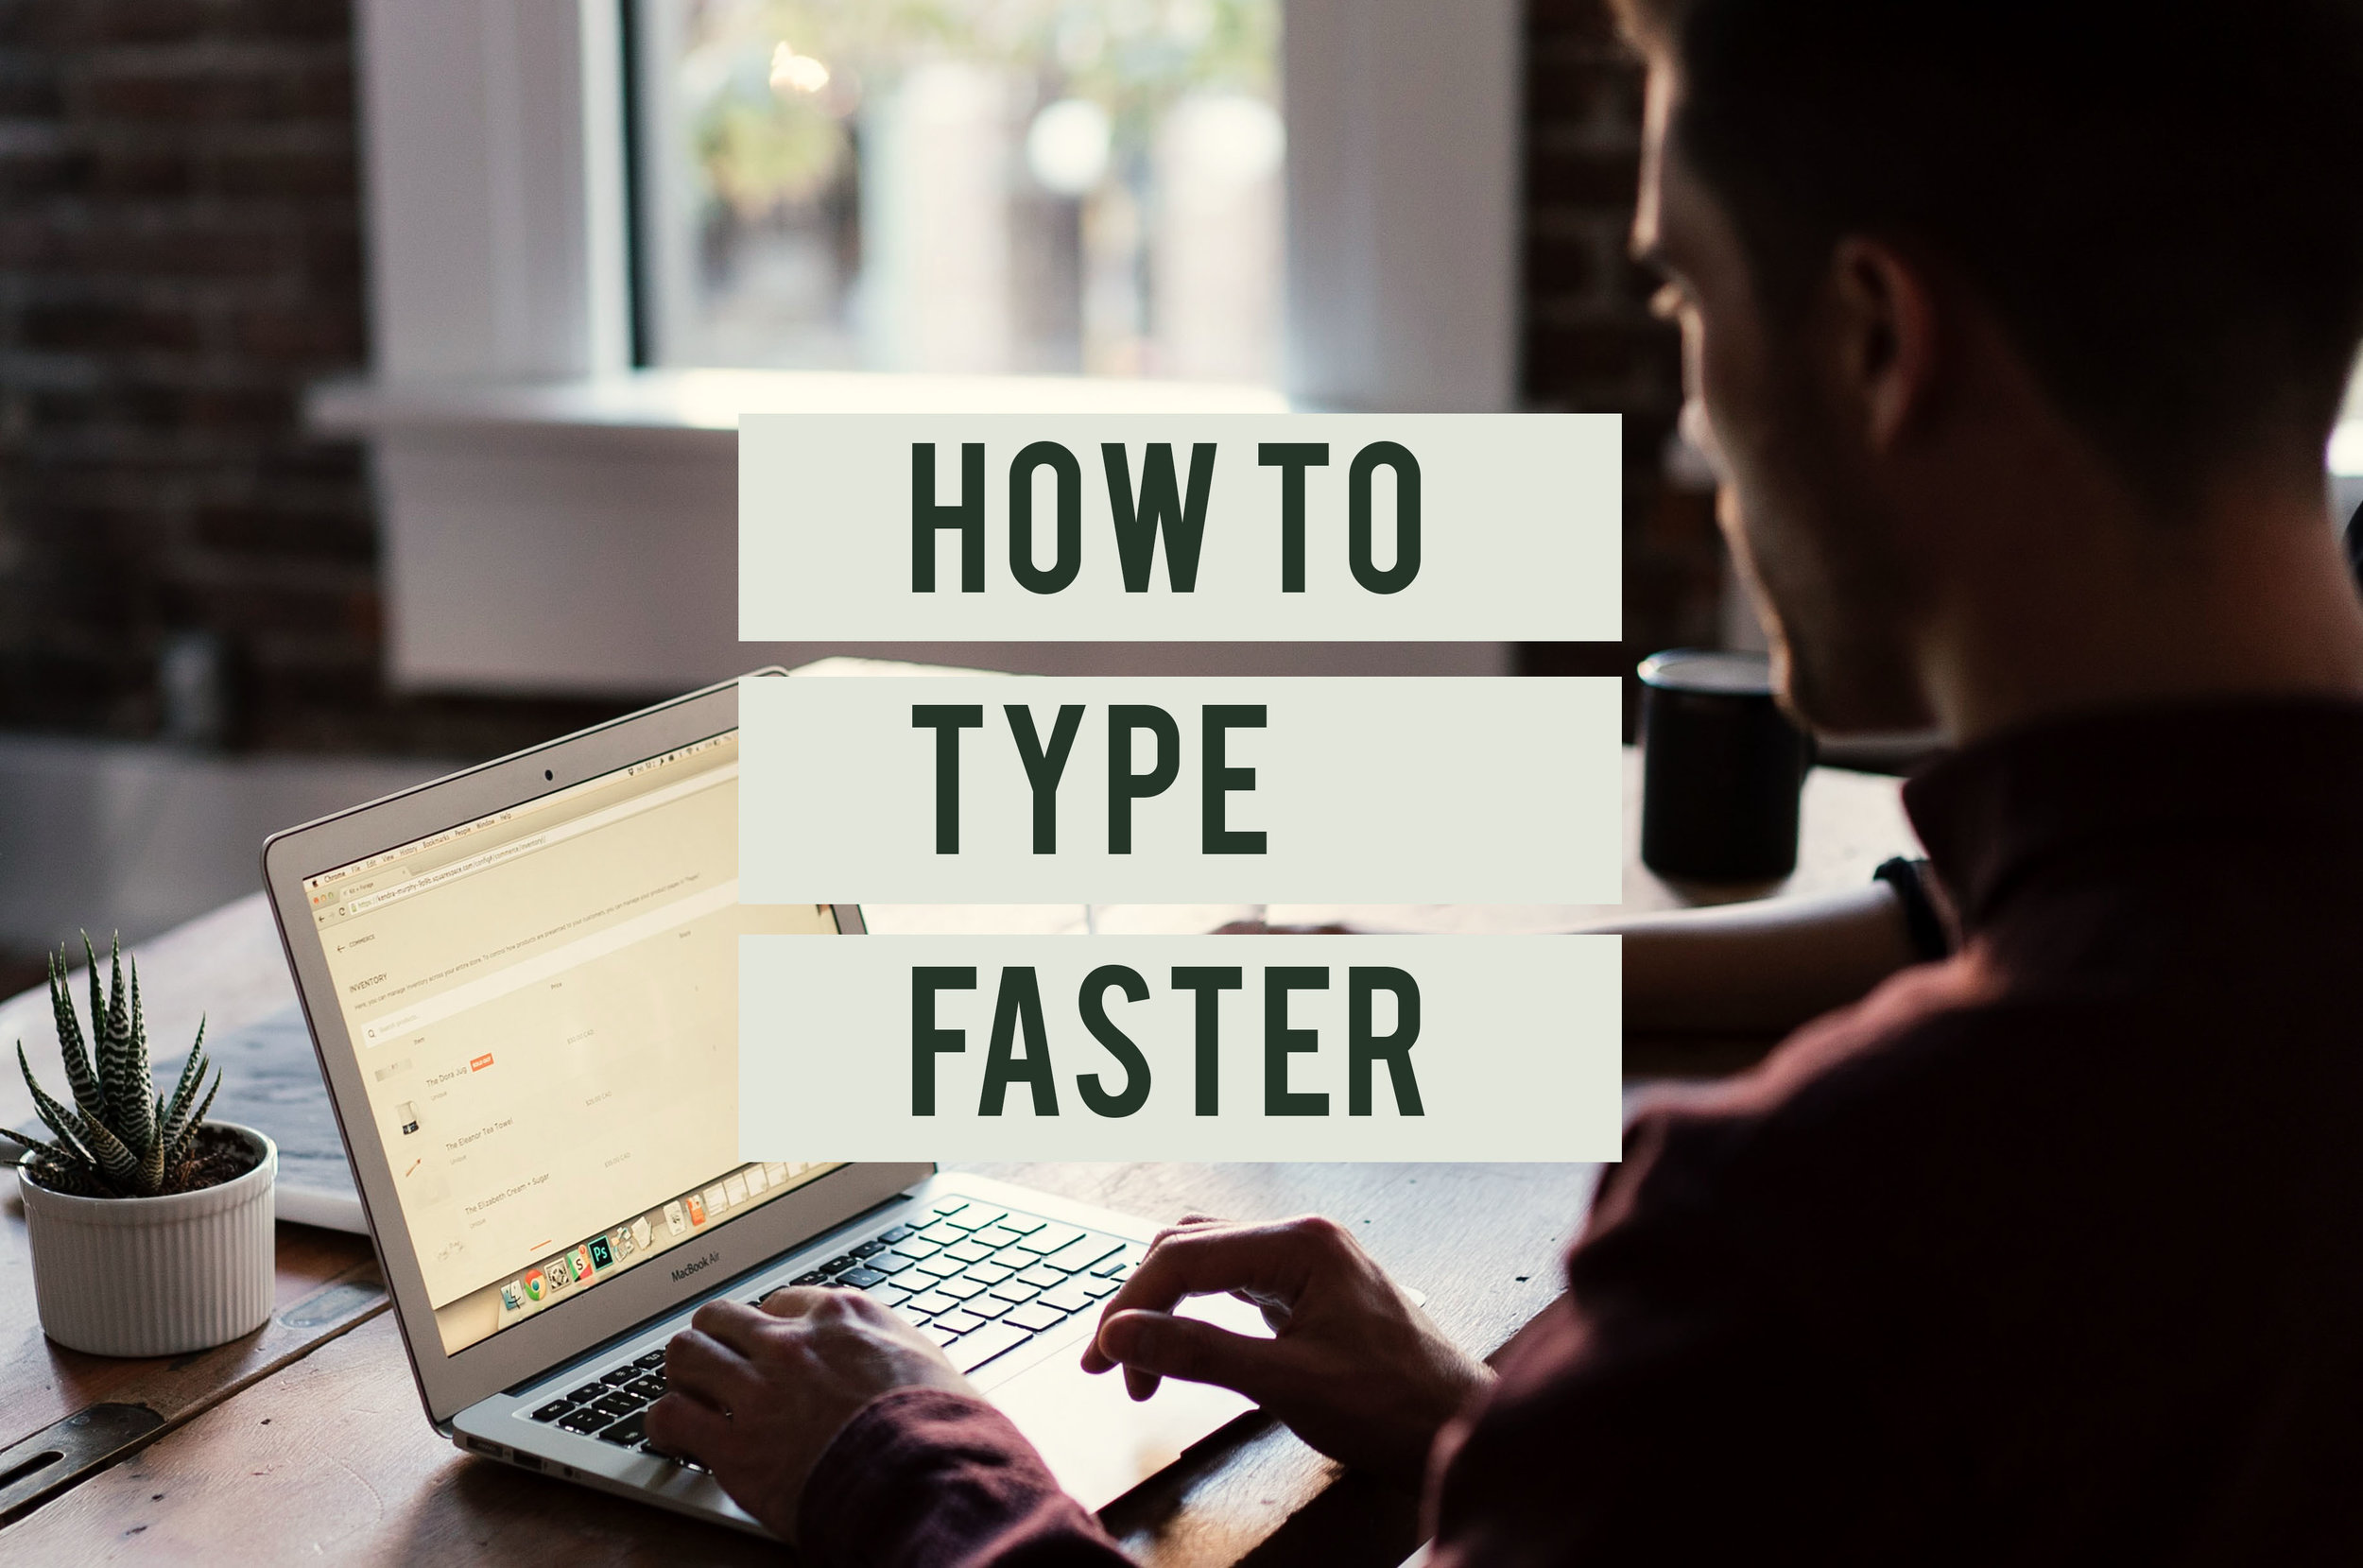 How To Type Faster.jpg